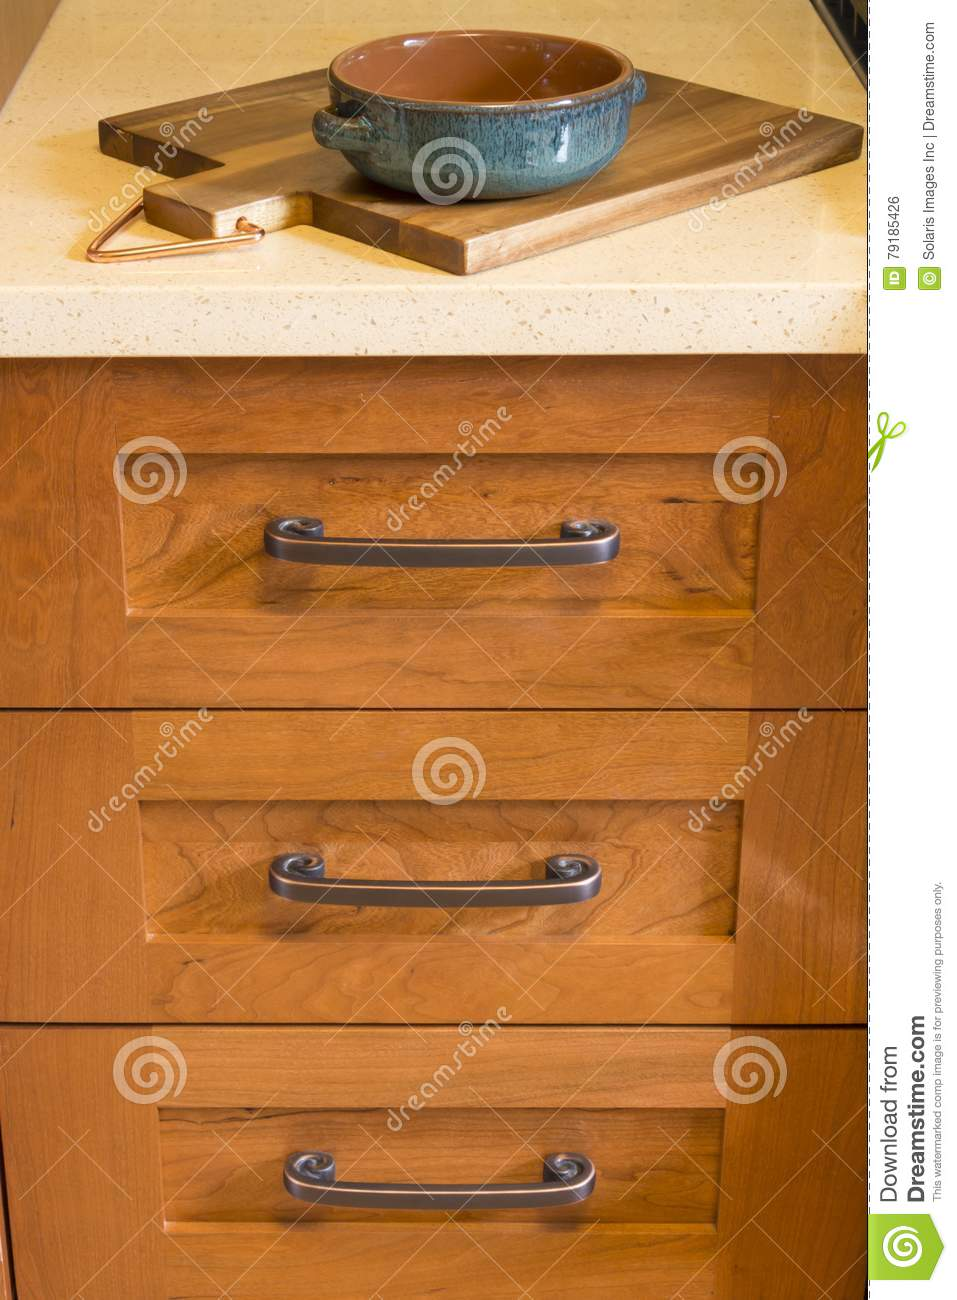 Detail Of High Quality Wood Kitchen Cabinets Cabinet Hardware And Quartz Countertop With Cutting Board And Serving Dish Stock Photo Image Of Details Cutting 79185426